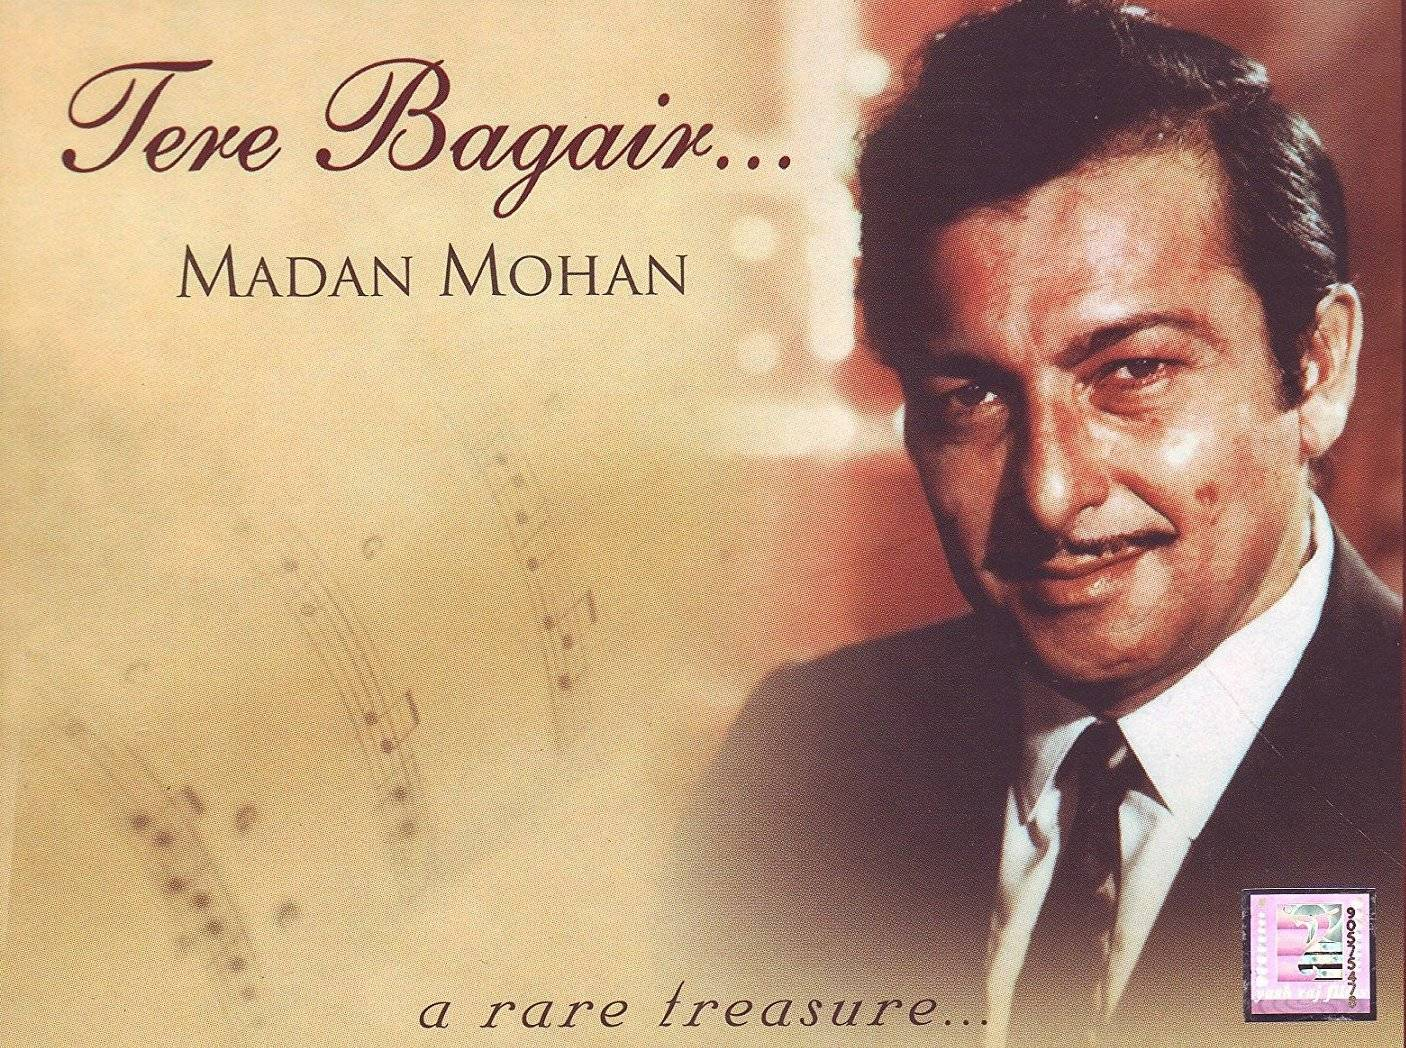 Sanjeev Kohli gets candid about his father the Late Madan Mohan